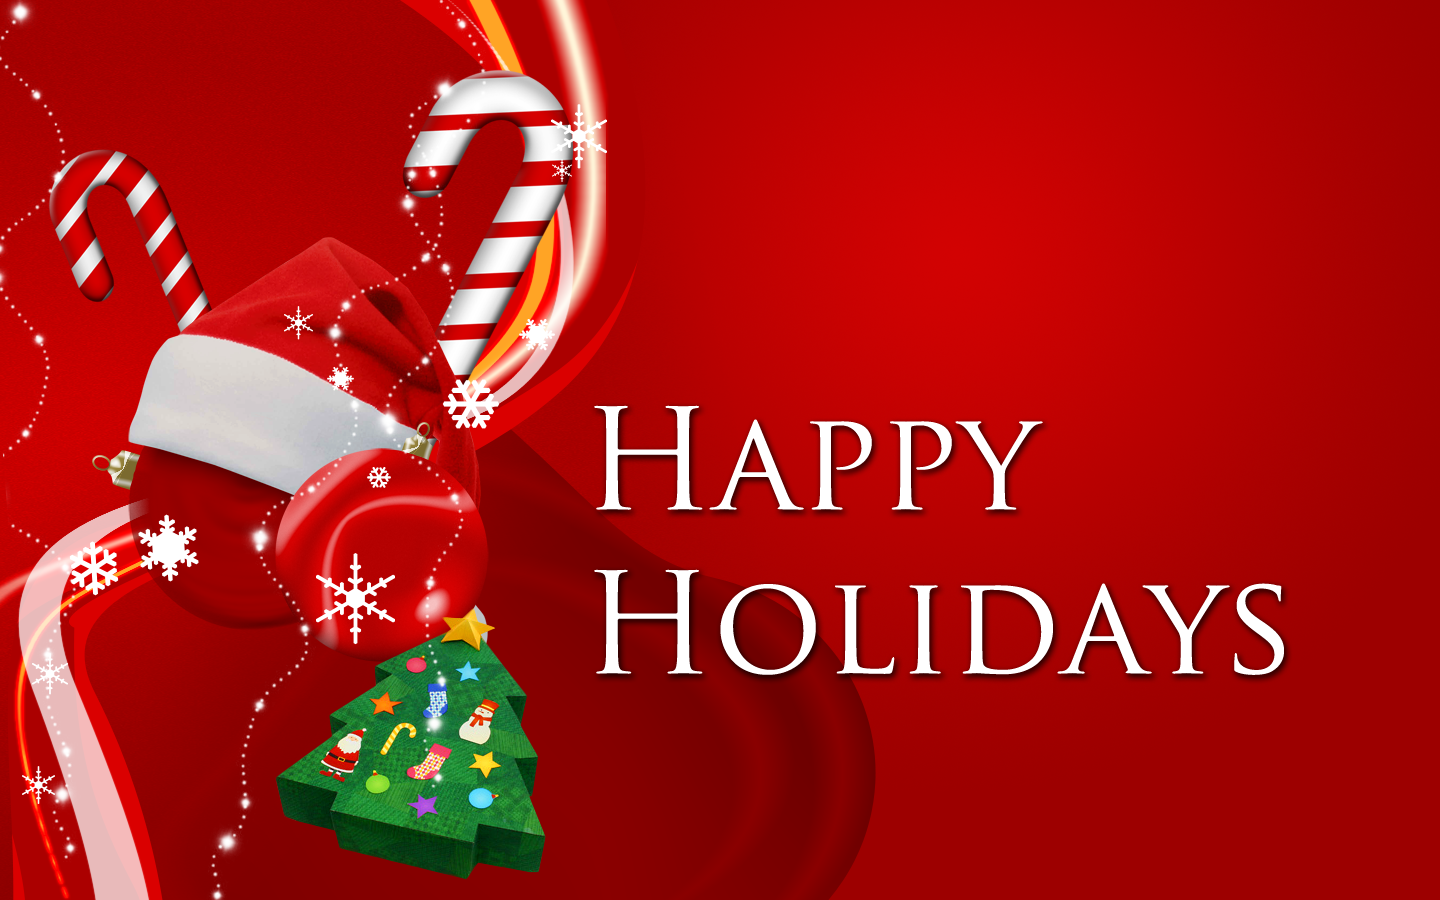 Awesome Free Merry Christmas Ecard Images - Merry Christmas Wishes ...